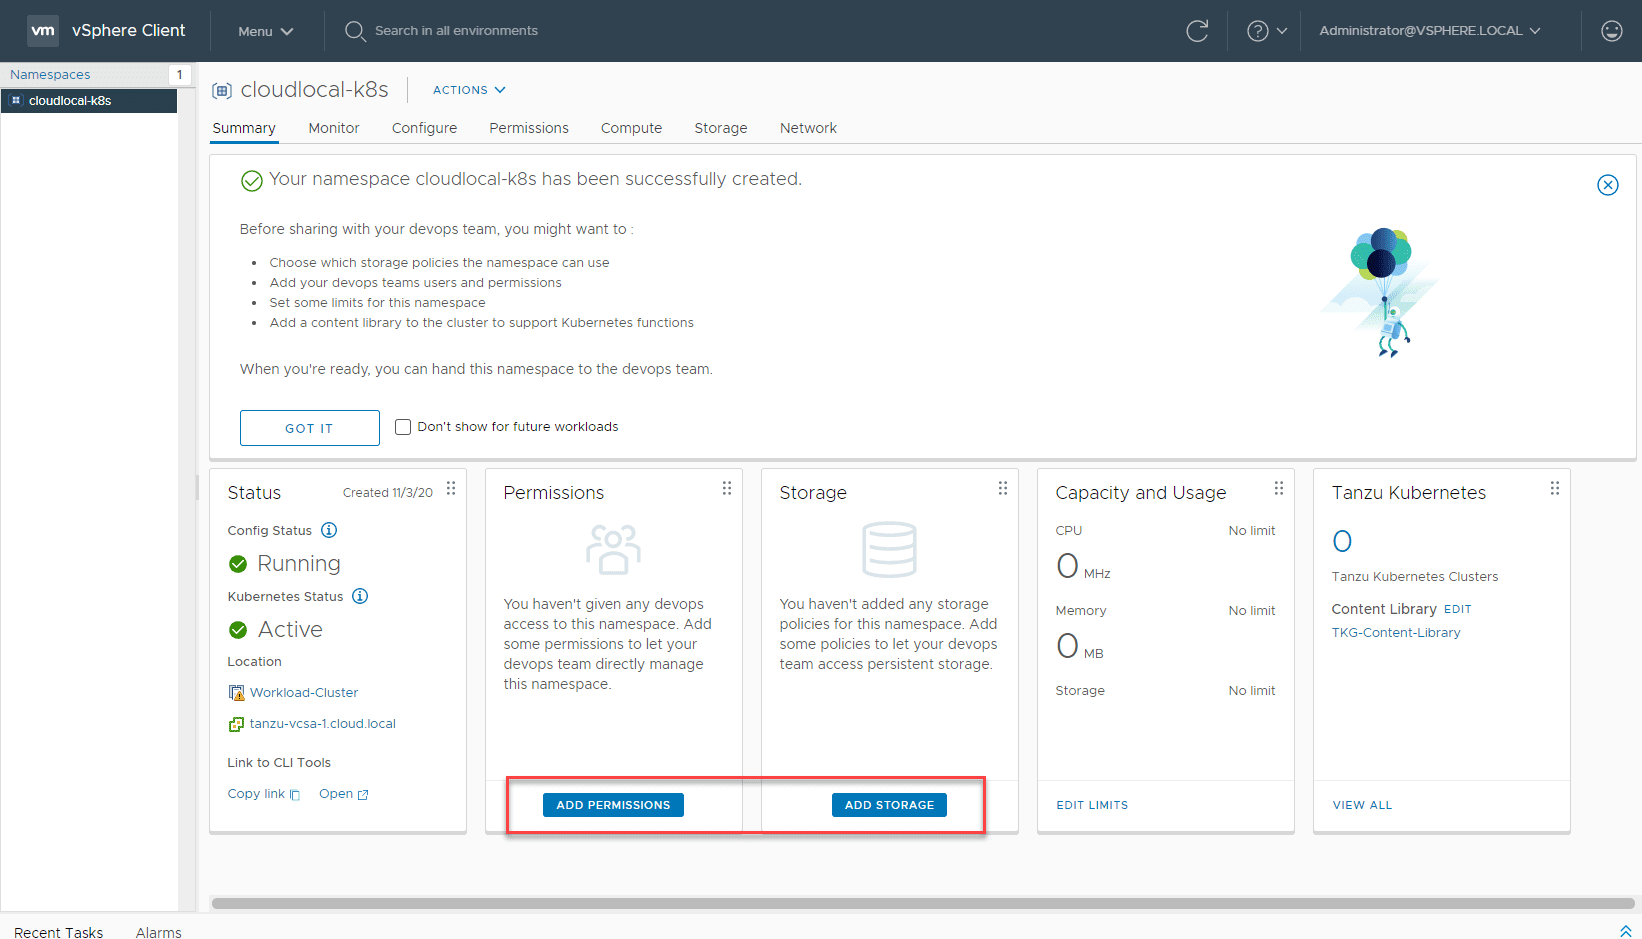 Add-permissions-and-storage-policy-to-the-namespace